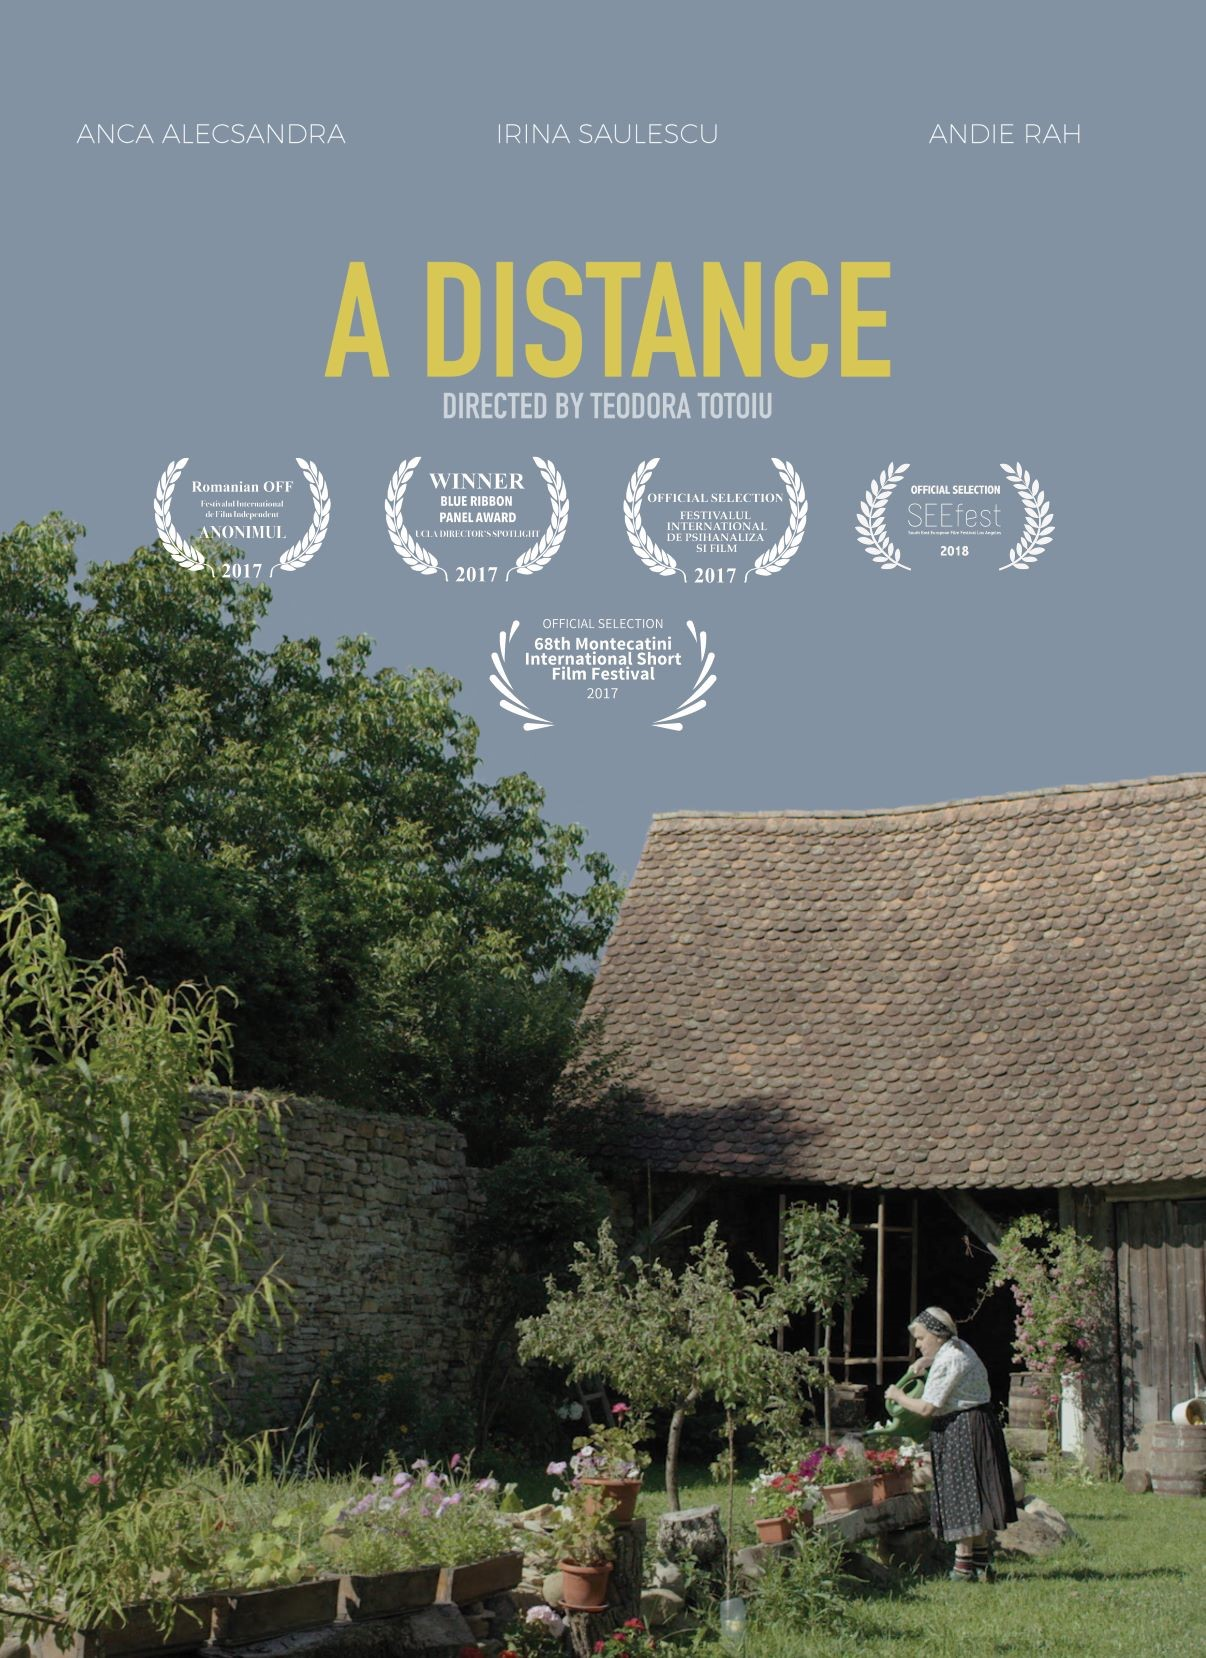 A Distance poster